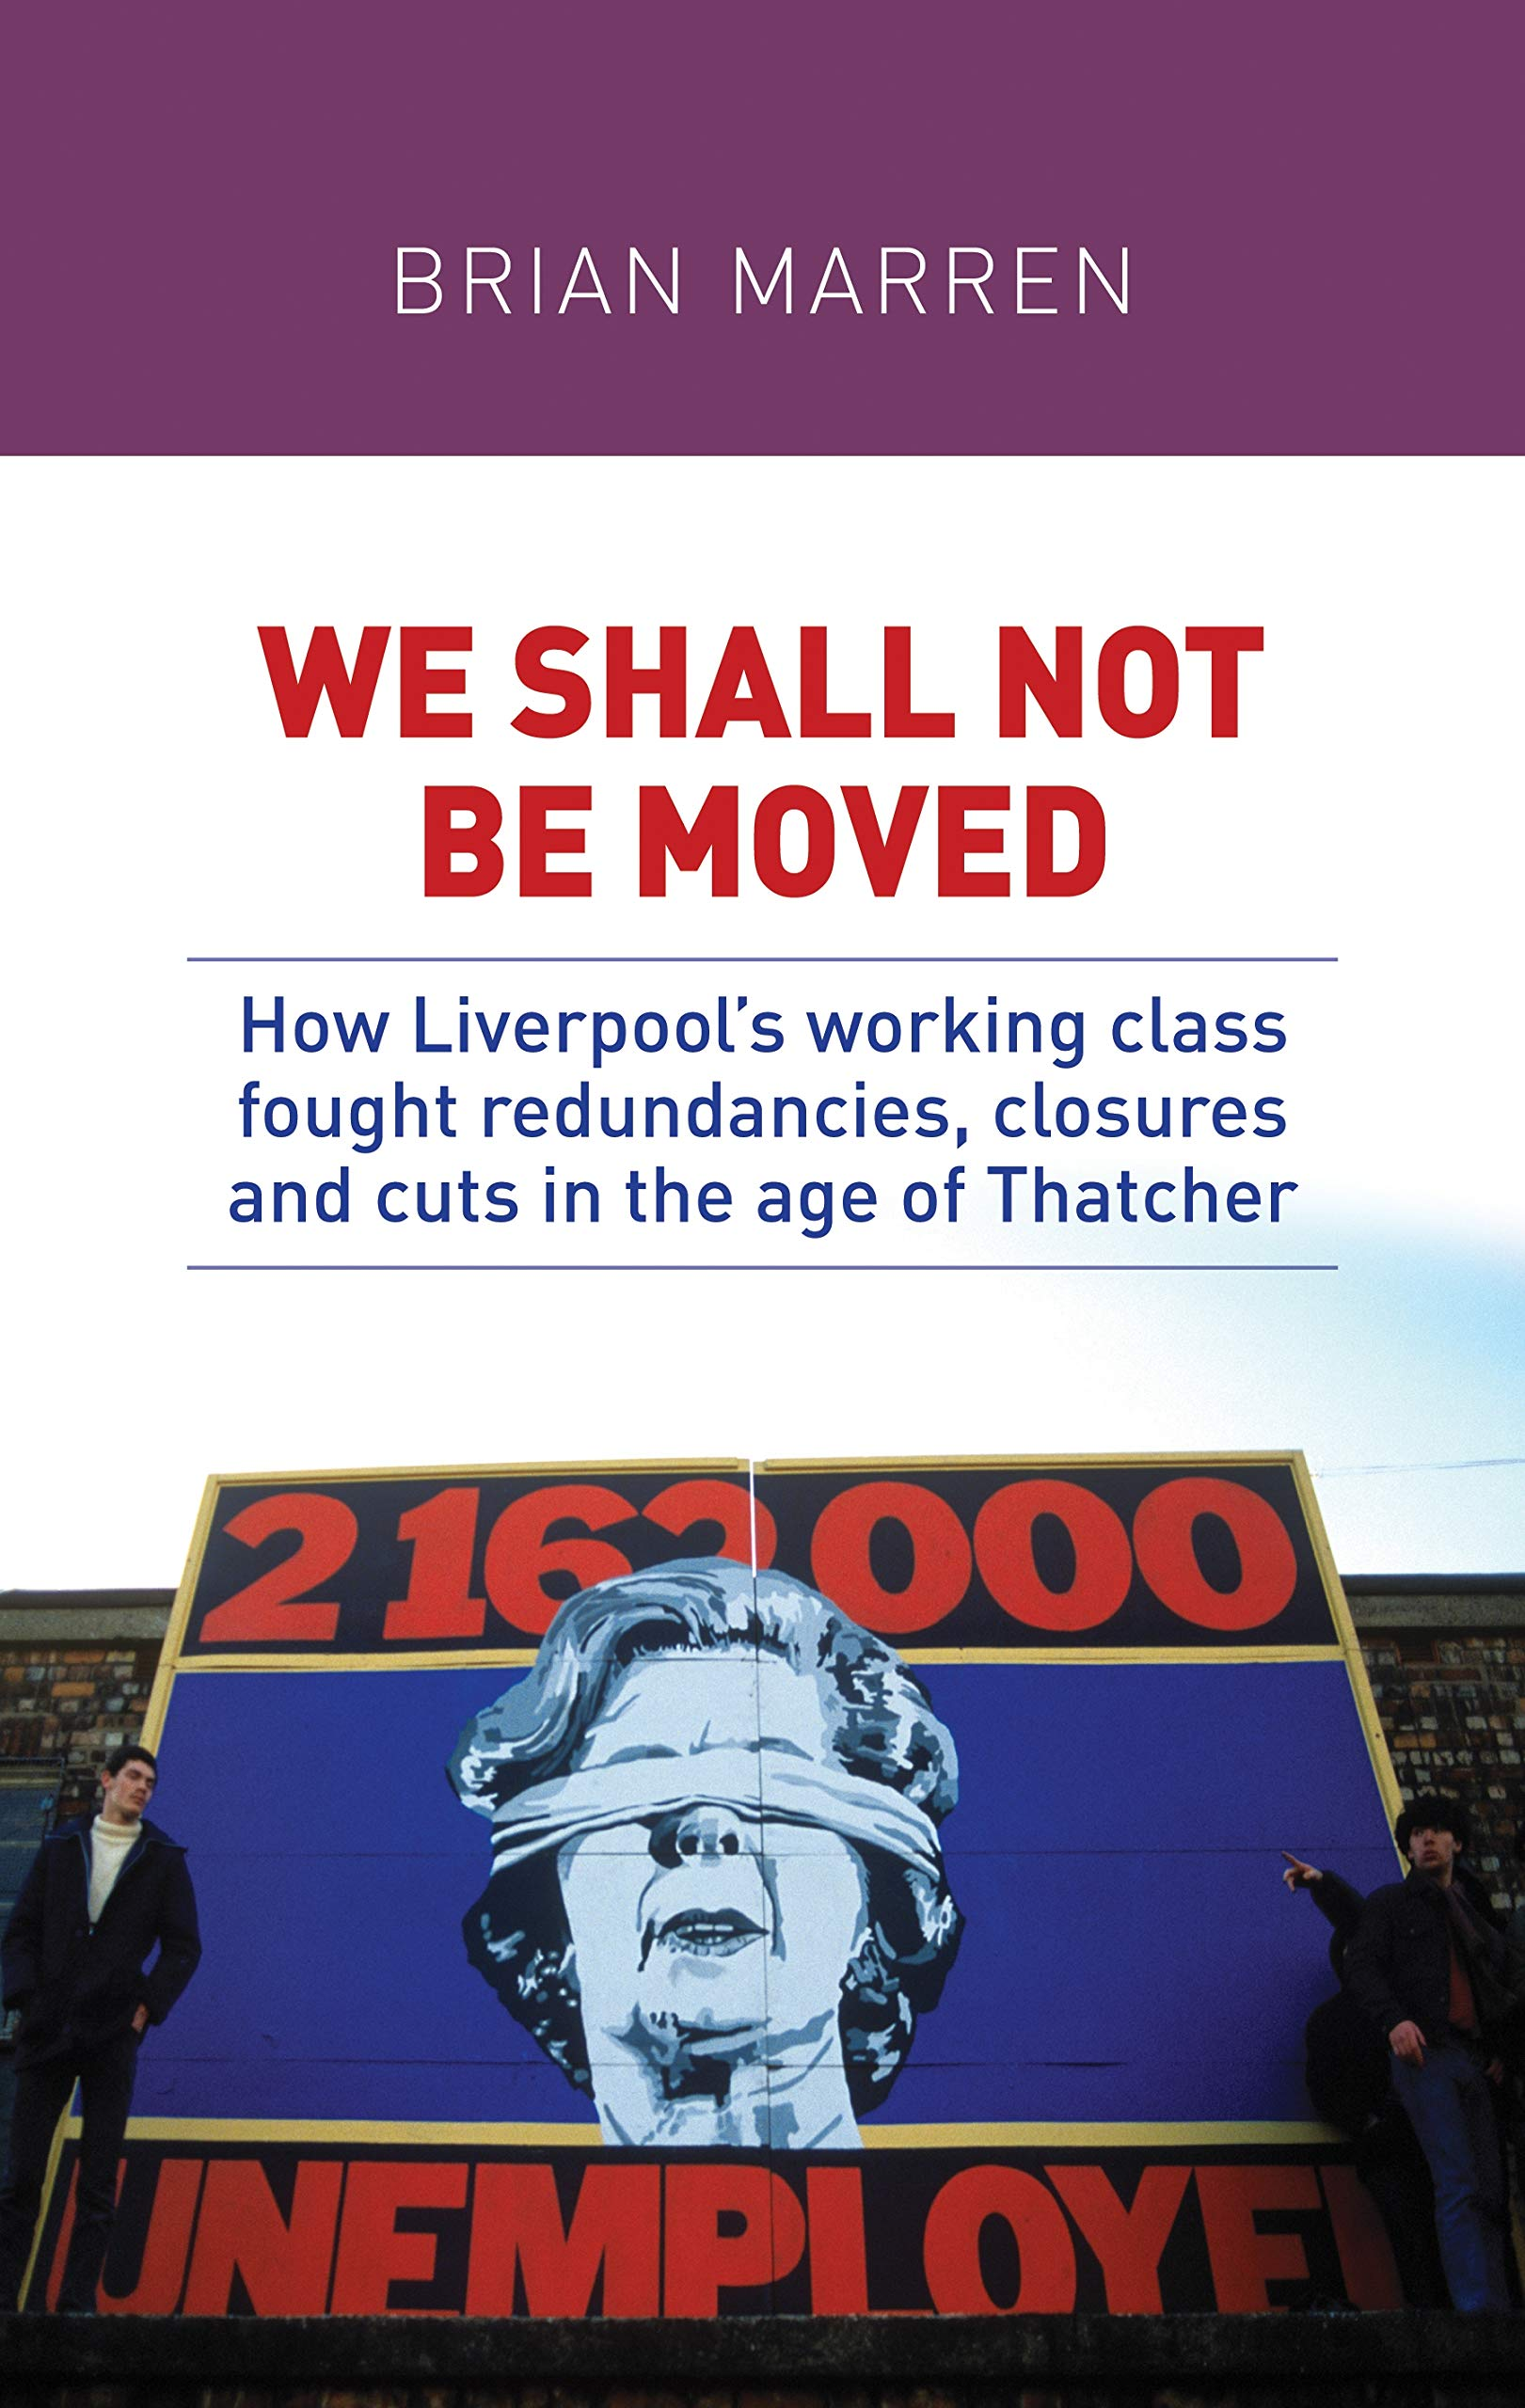 We shall not be moved: How Liverpool's working class fought redundancies, closures and cuts in the age of Thatcher